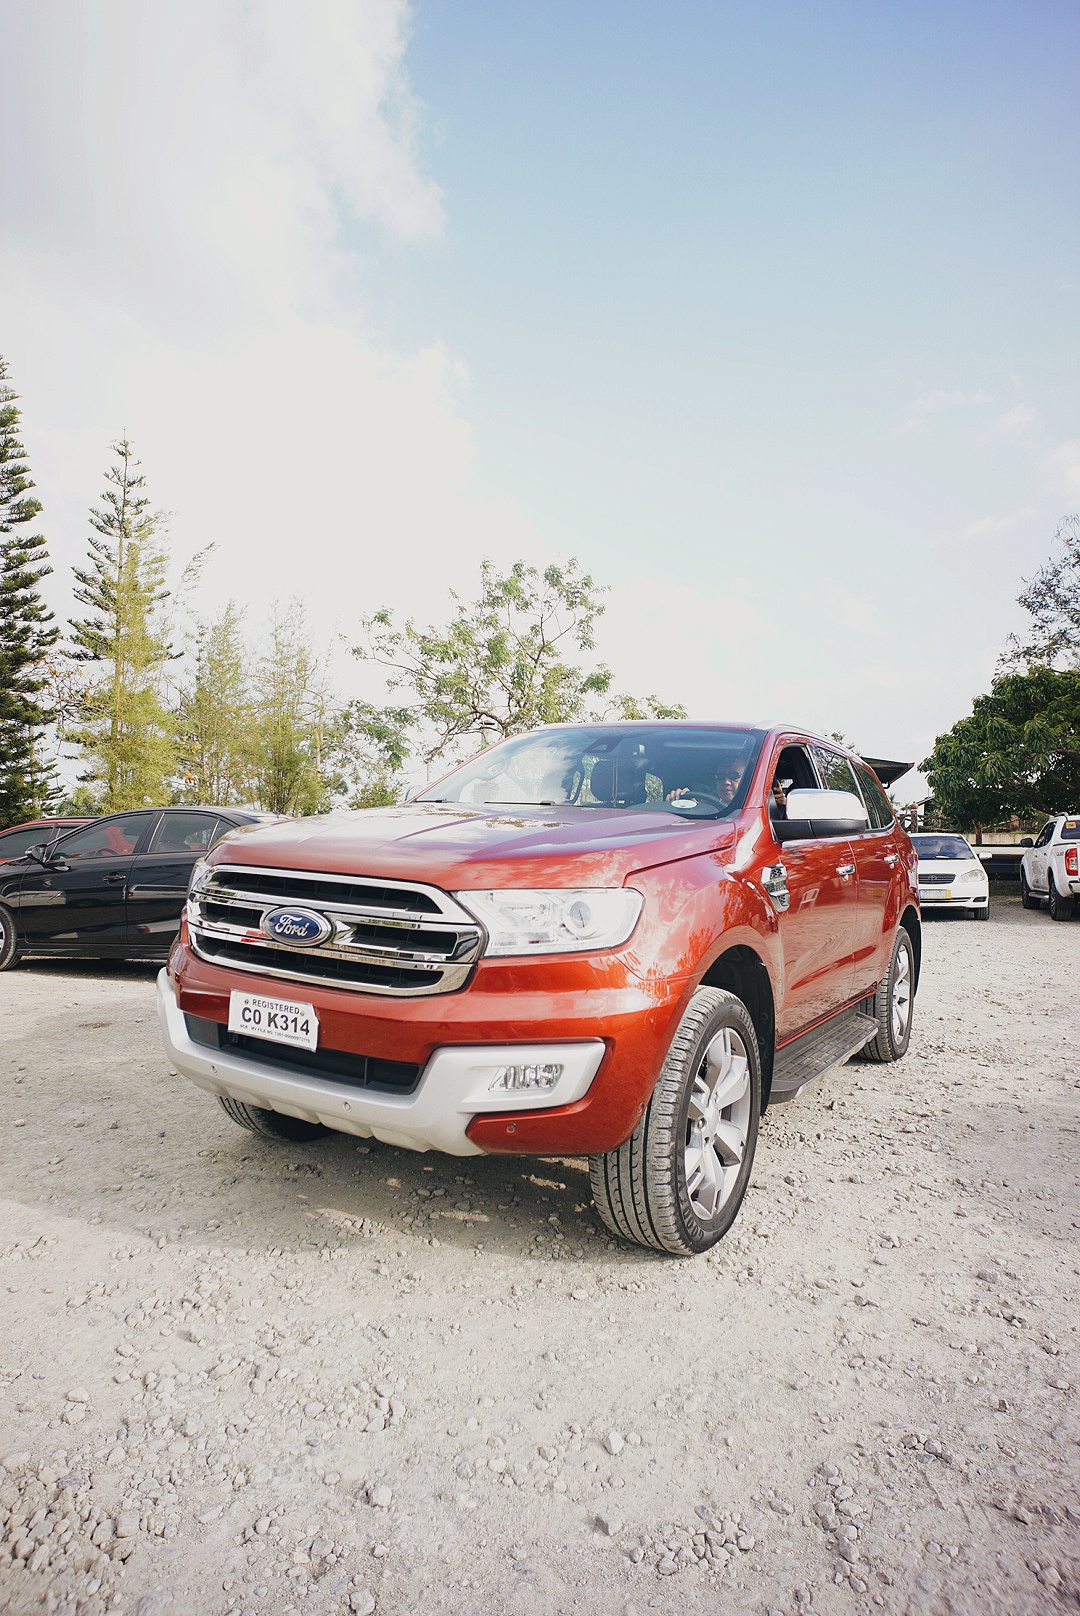 EATSplore Tagaytay Food Trip with Ford Everest